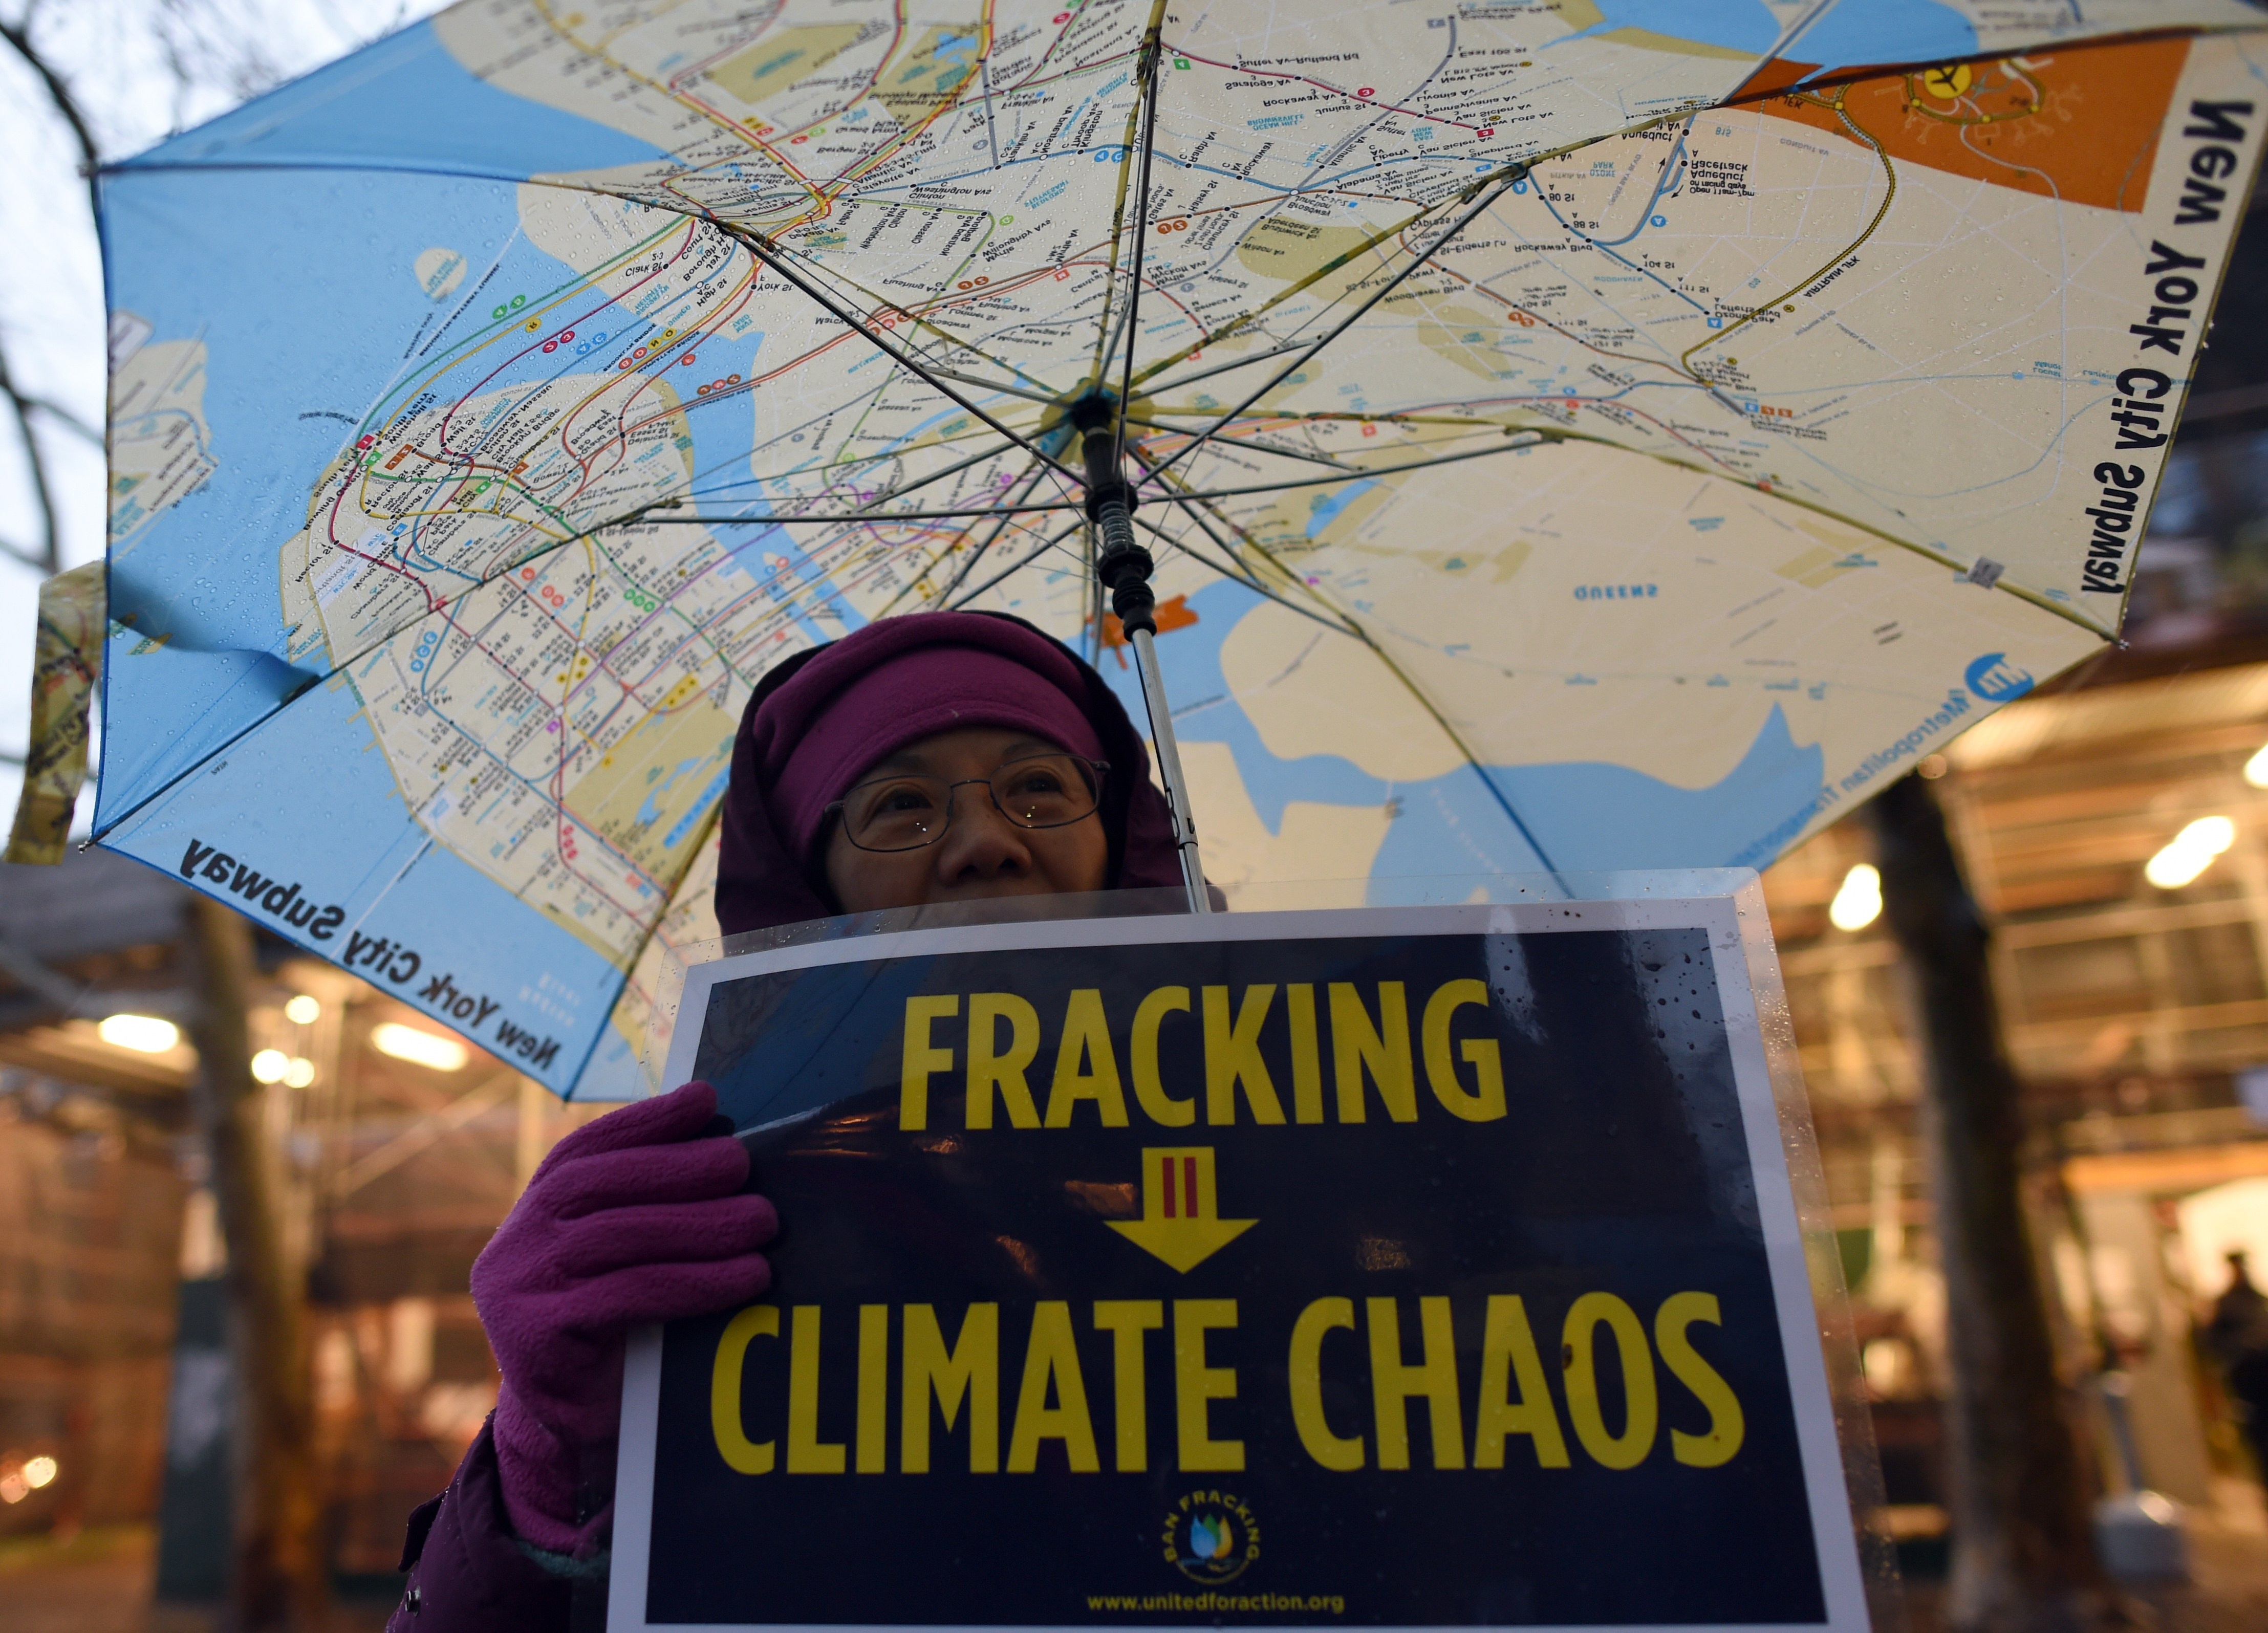 A woman holds an anti-fracking sign as a group of demonstrators gather for a rally for a Global Climate Treaty on Dec. 10, 2014 in New York City.